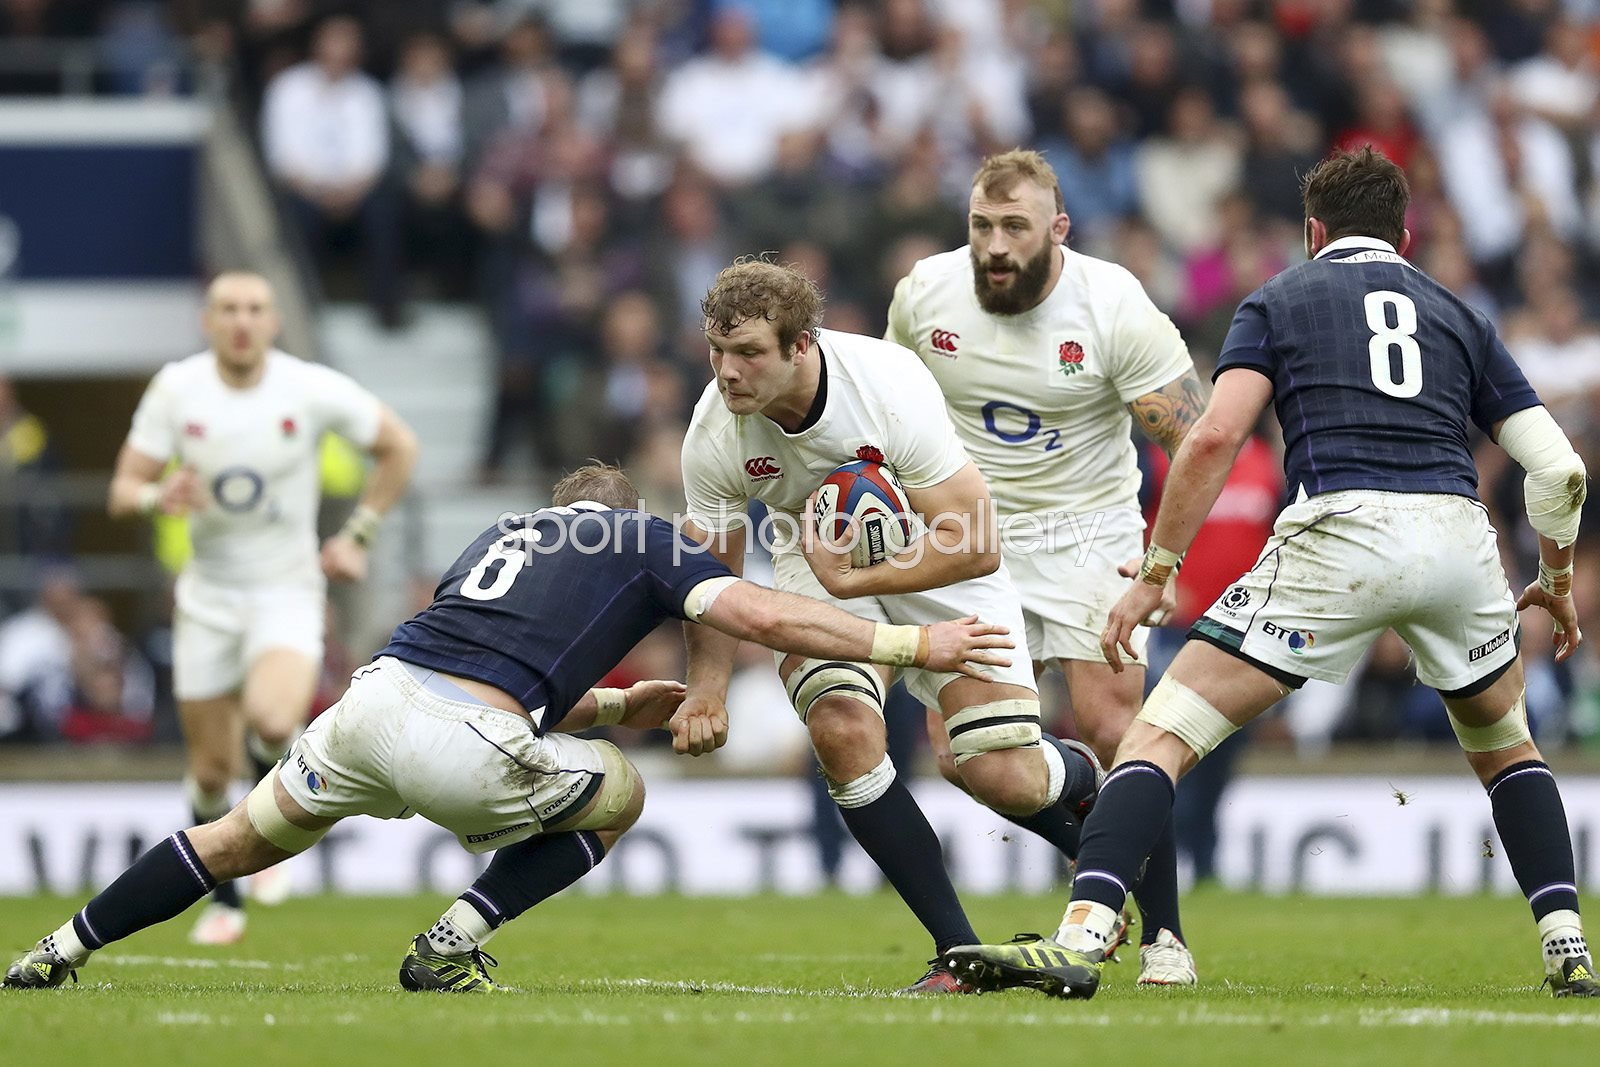 Joe Launchbury England v Scotland 6 Nations 2017